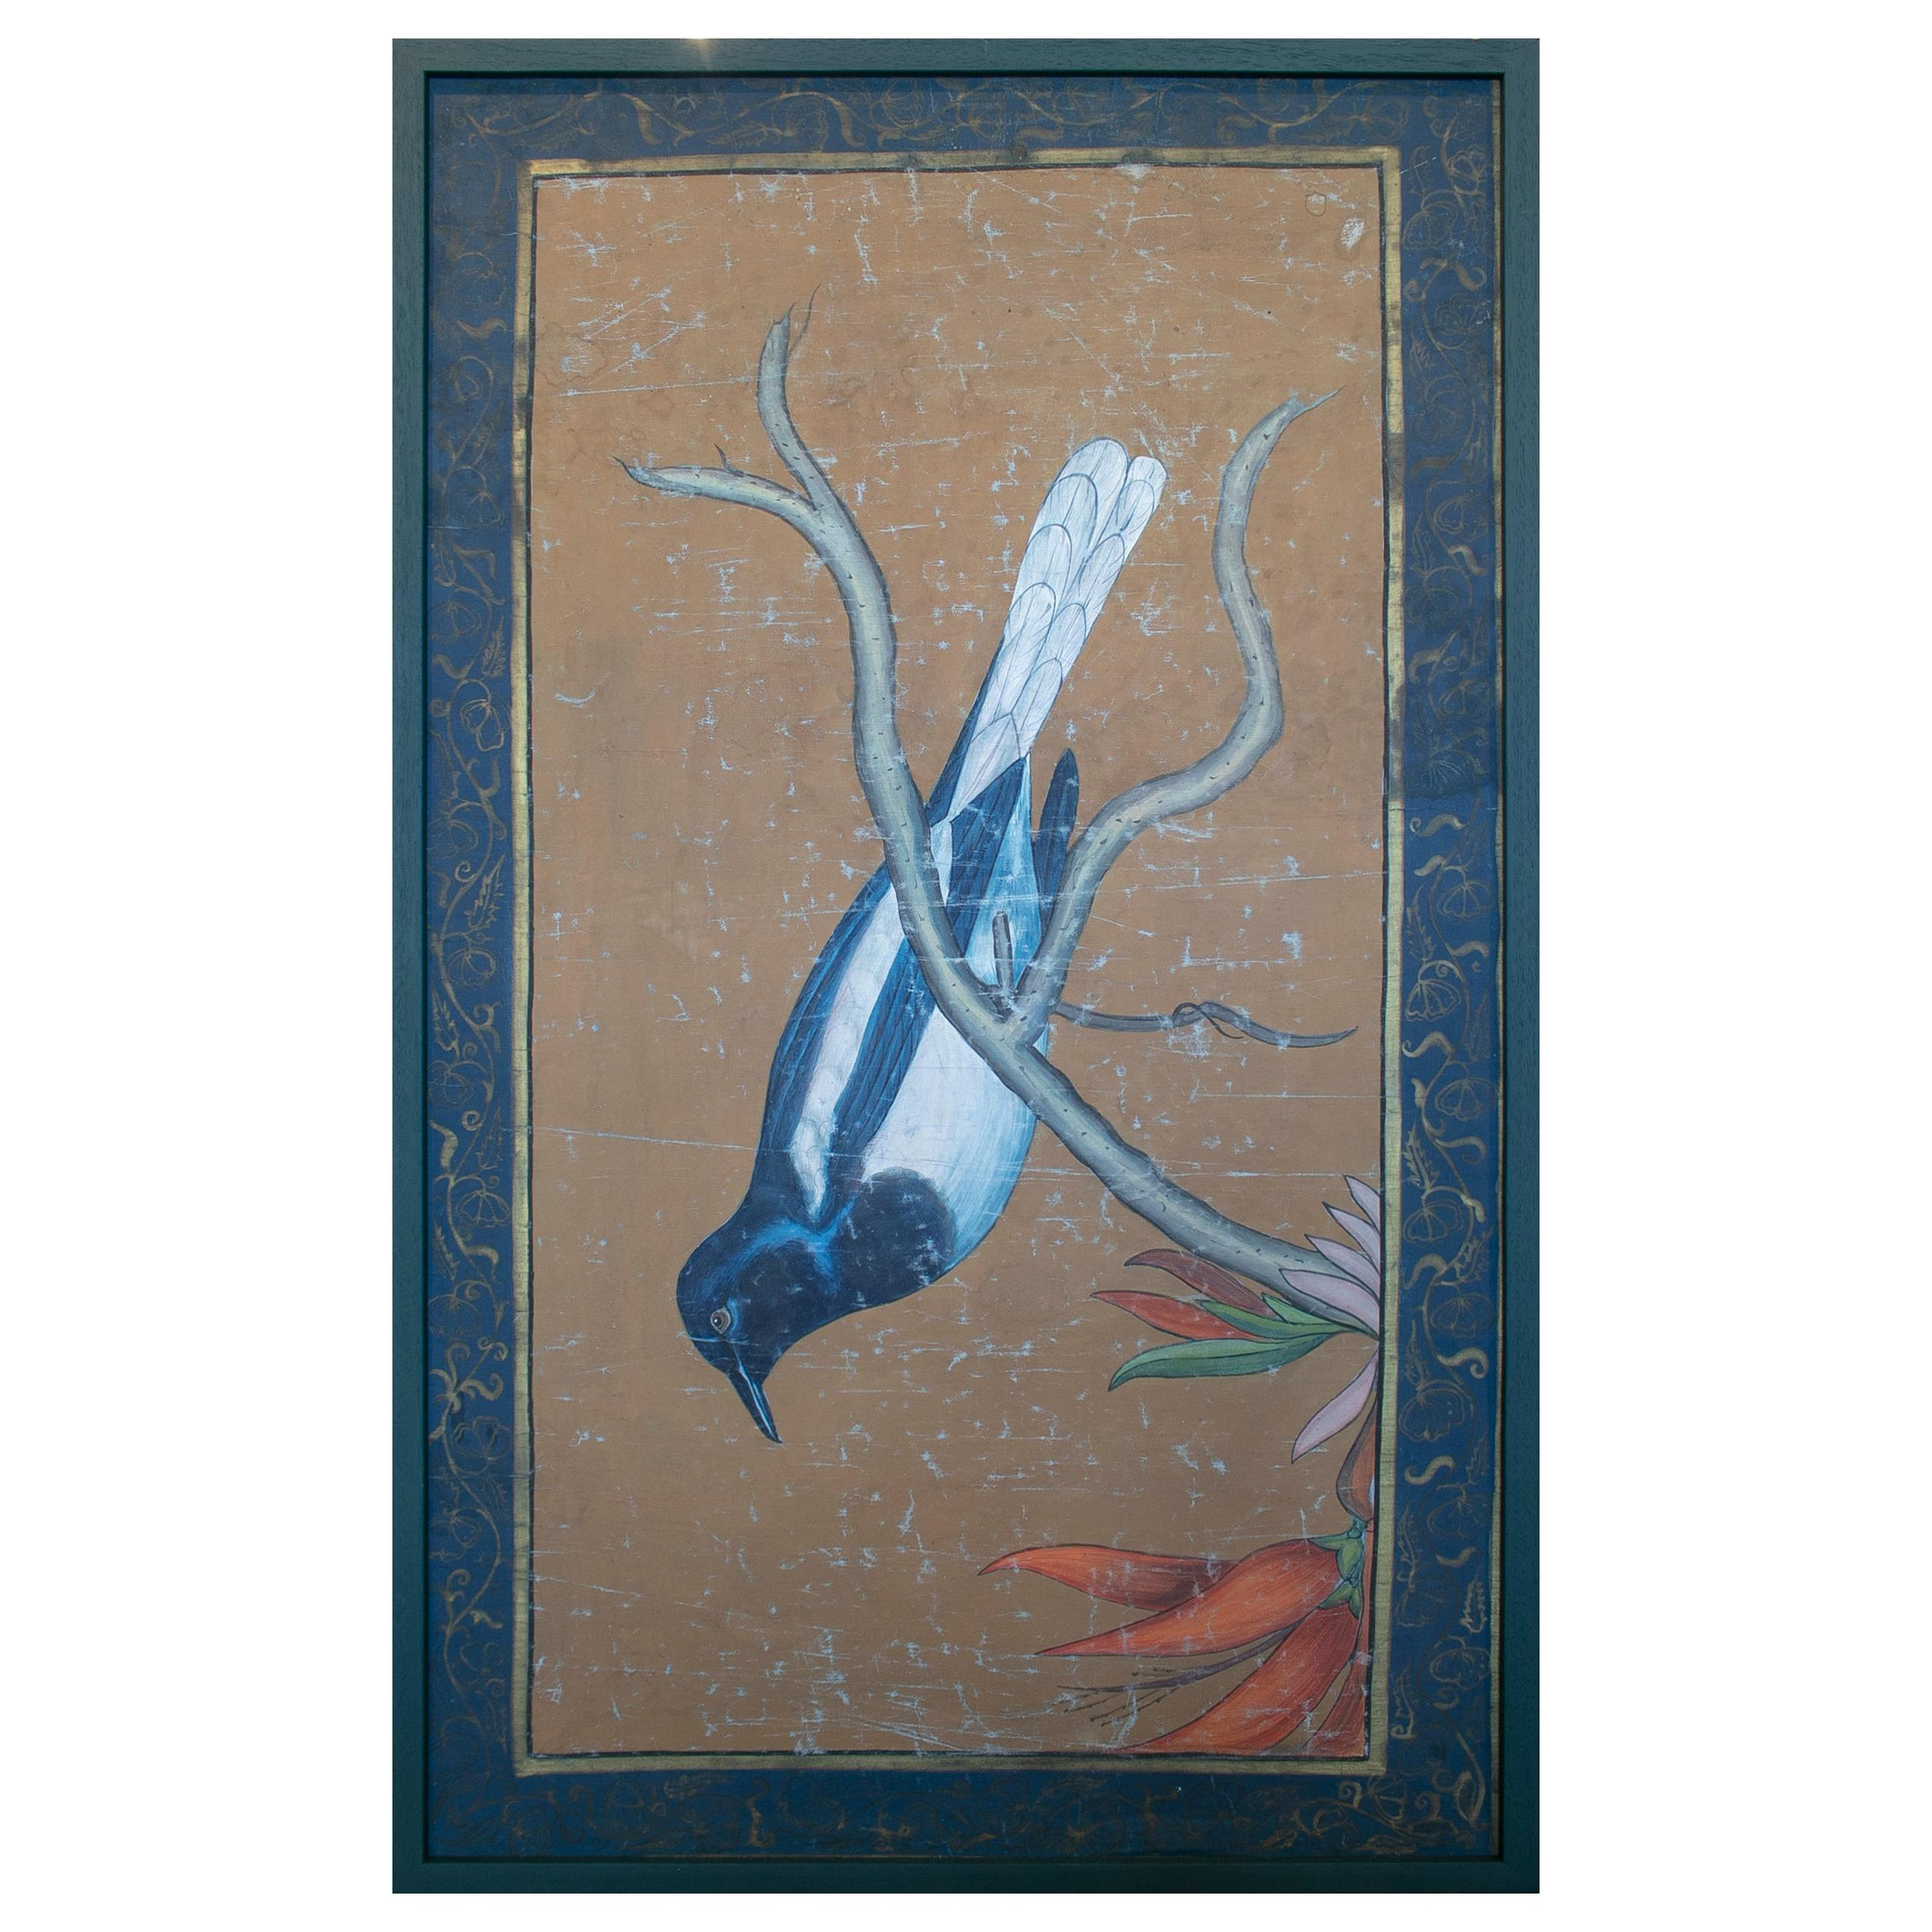 1980s Bird Painting on Cloth with Frame